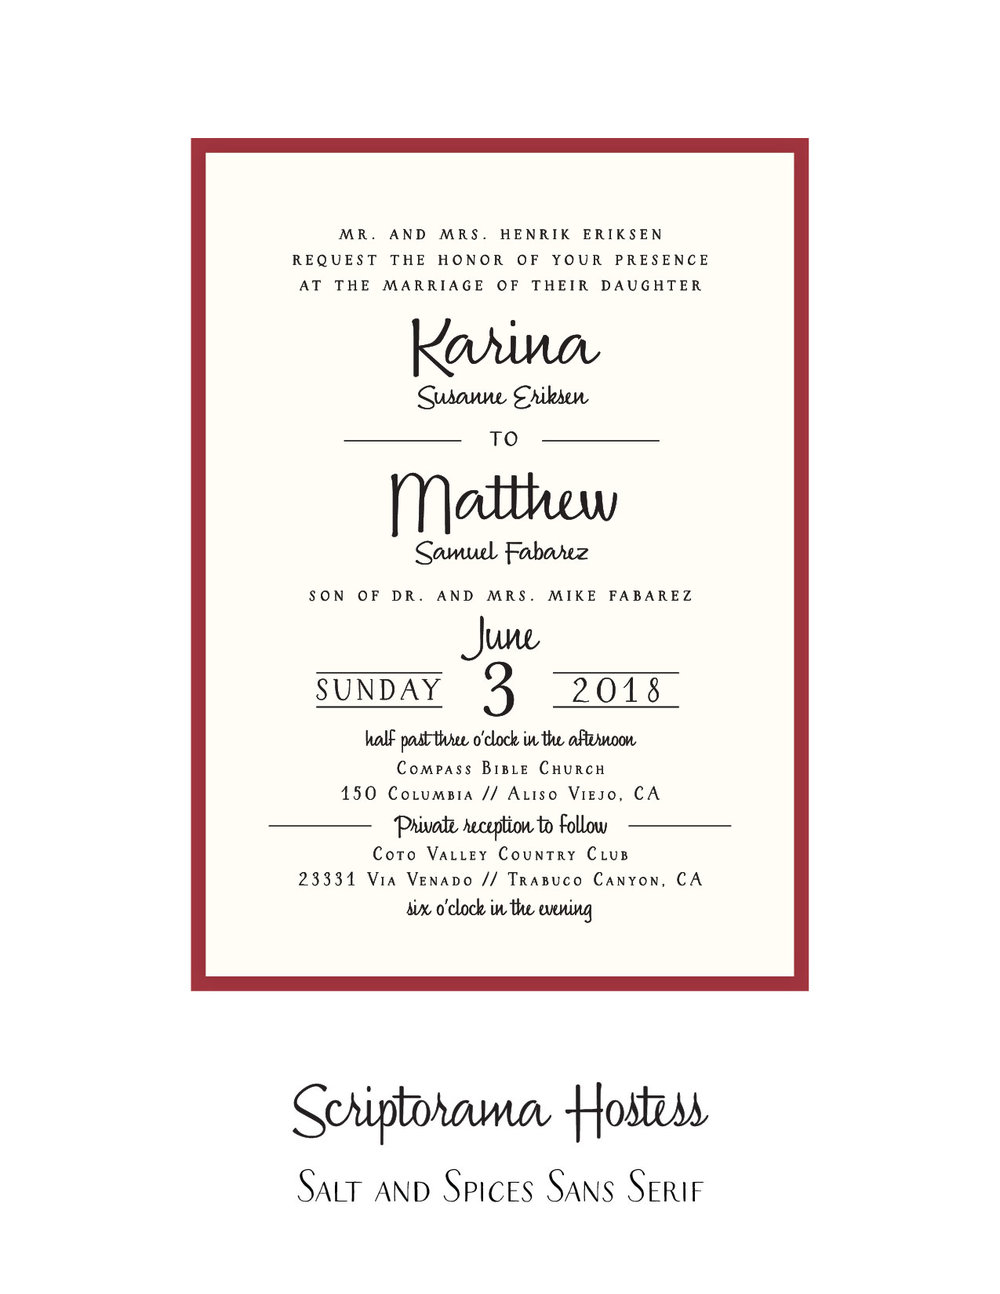 Wedding Fonts_Scriptorama Hostess.jpg